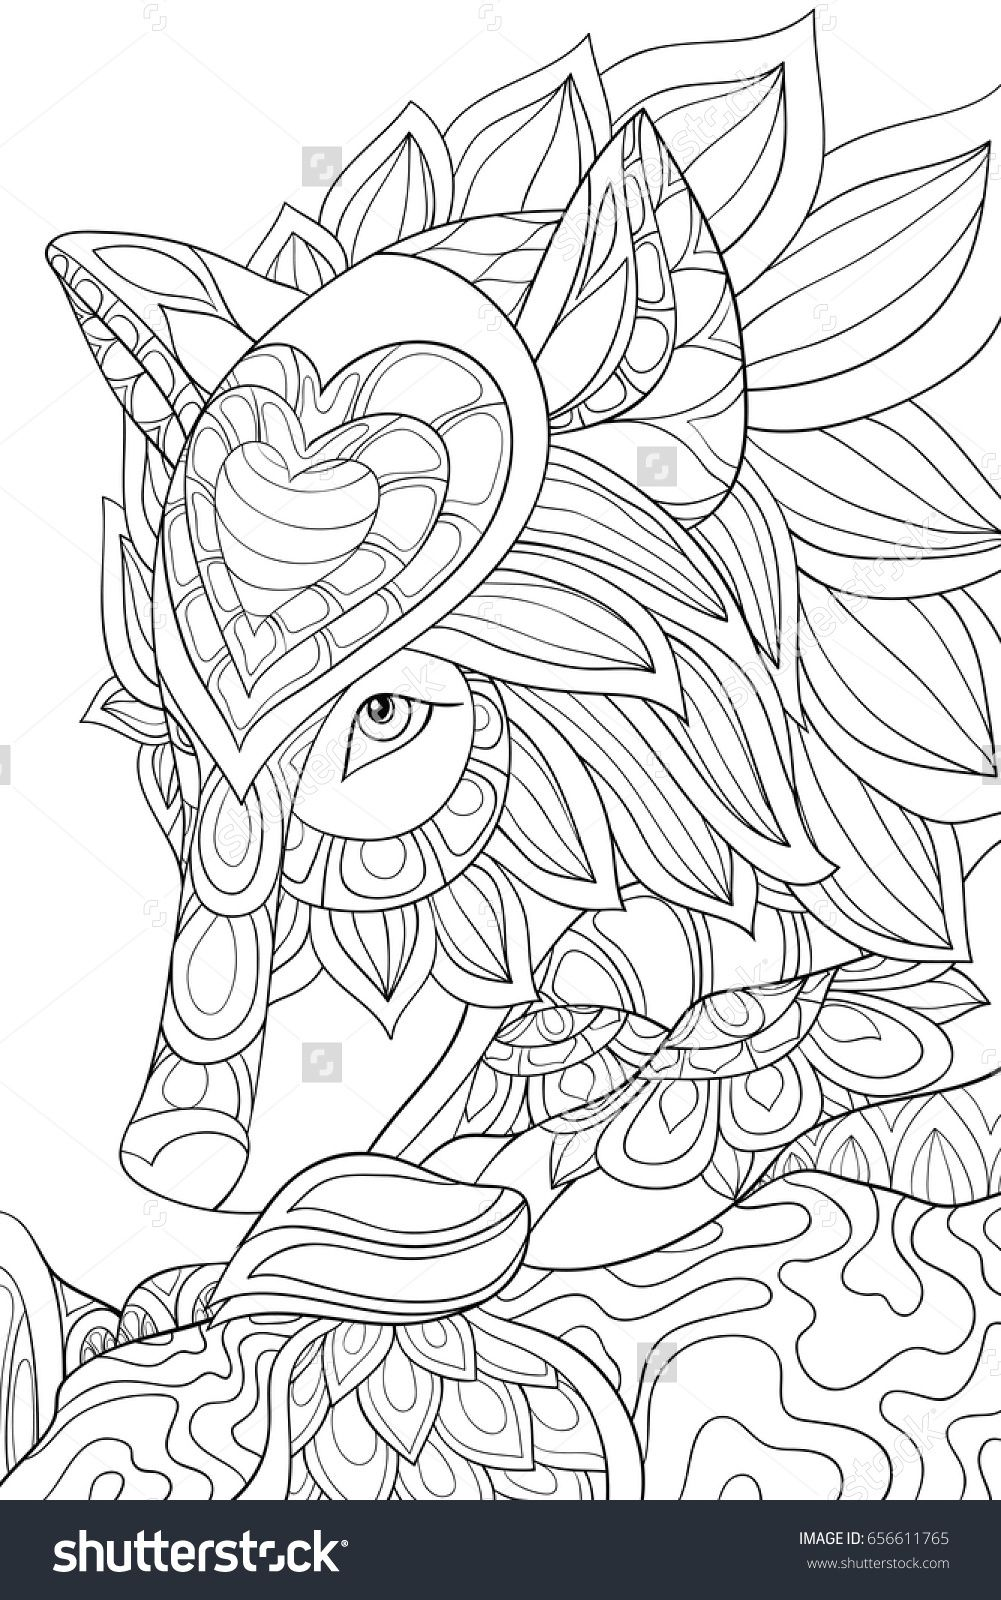 Adult coloring pagebook an wolfzen art style illustration